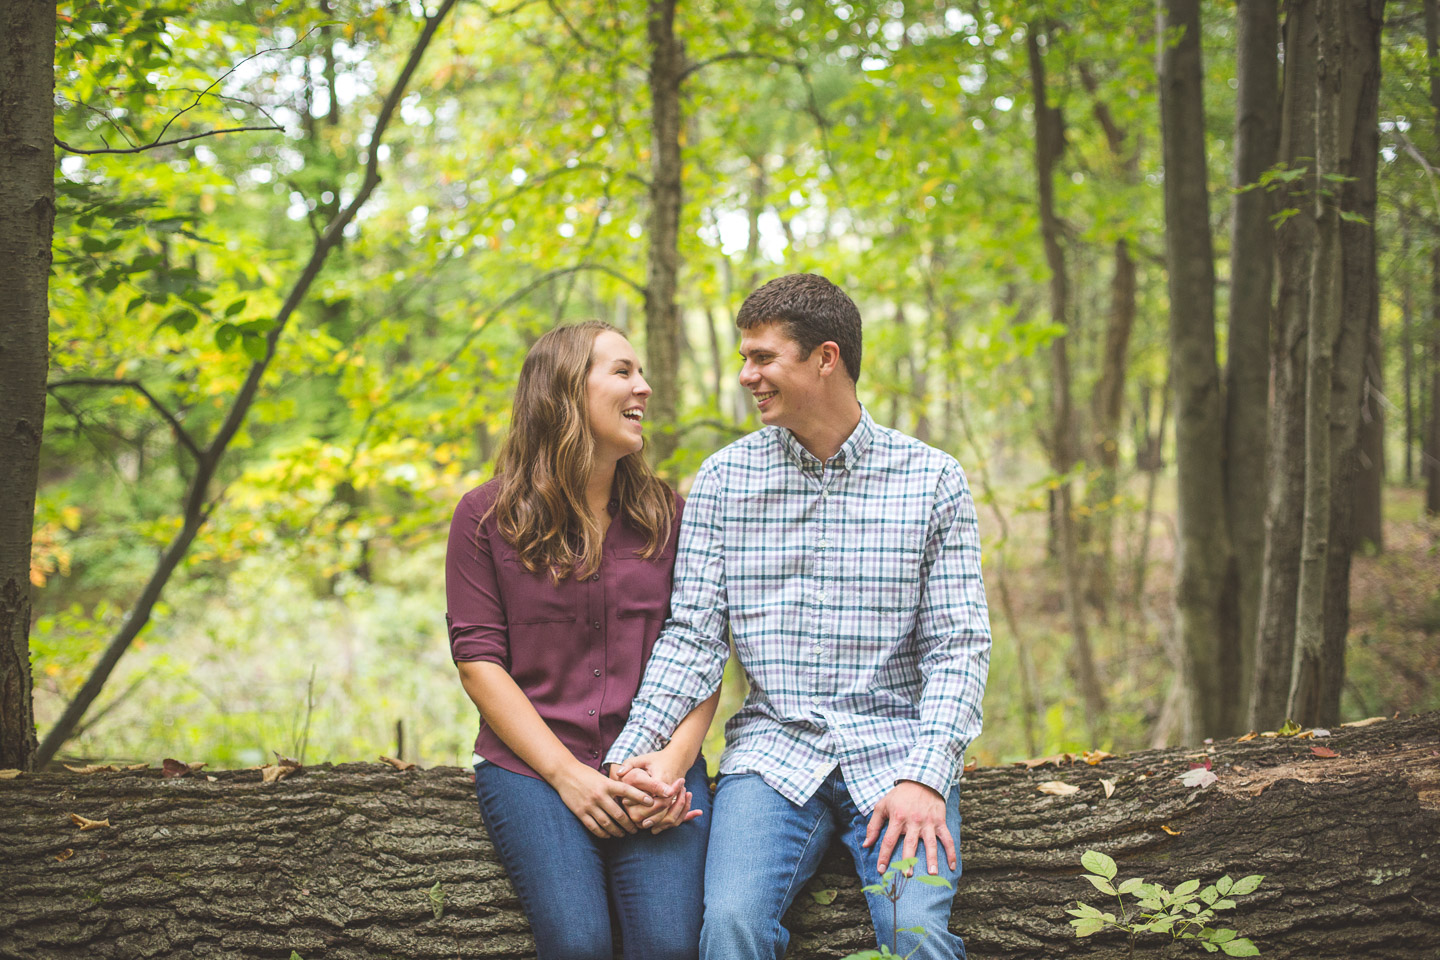 Engagement-Milford-Kensington-Metropark-Forest-Couple-Laughing-On-A-Log